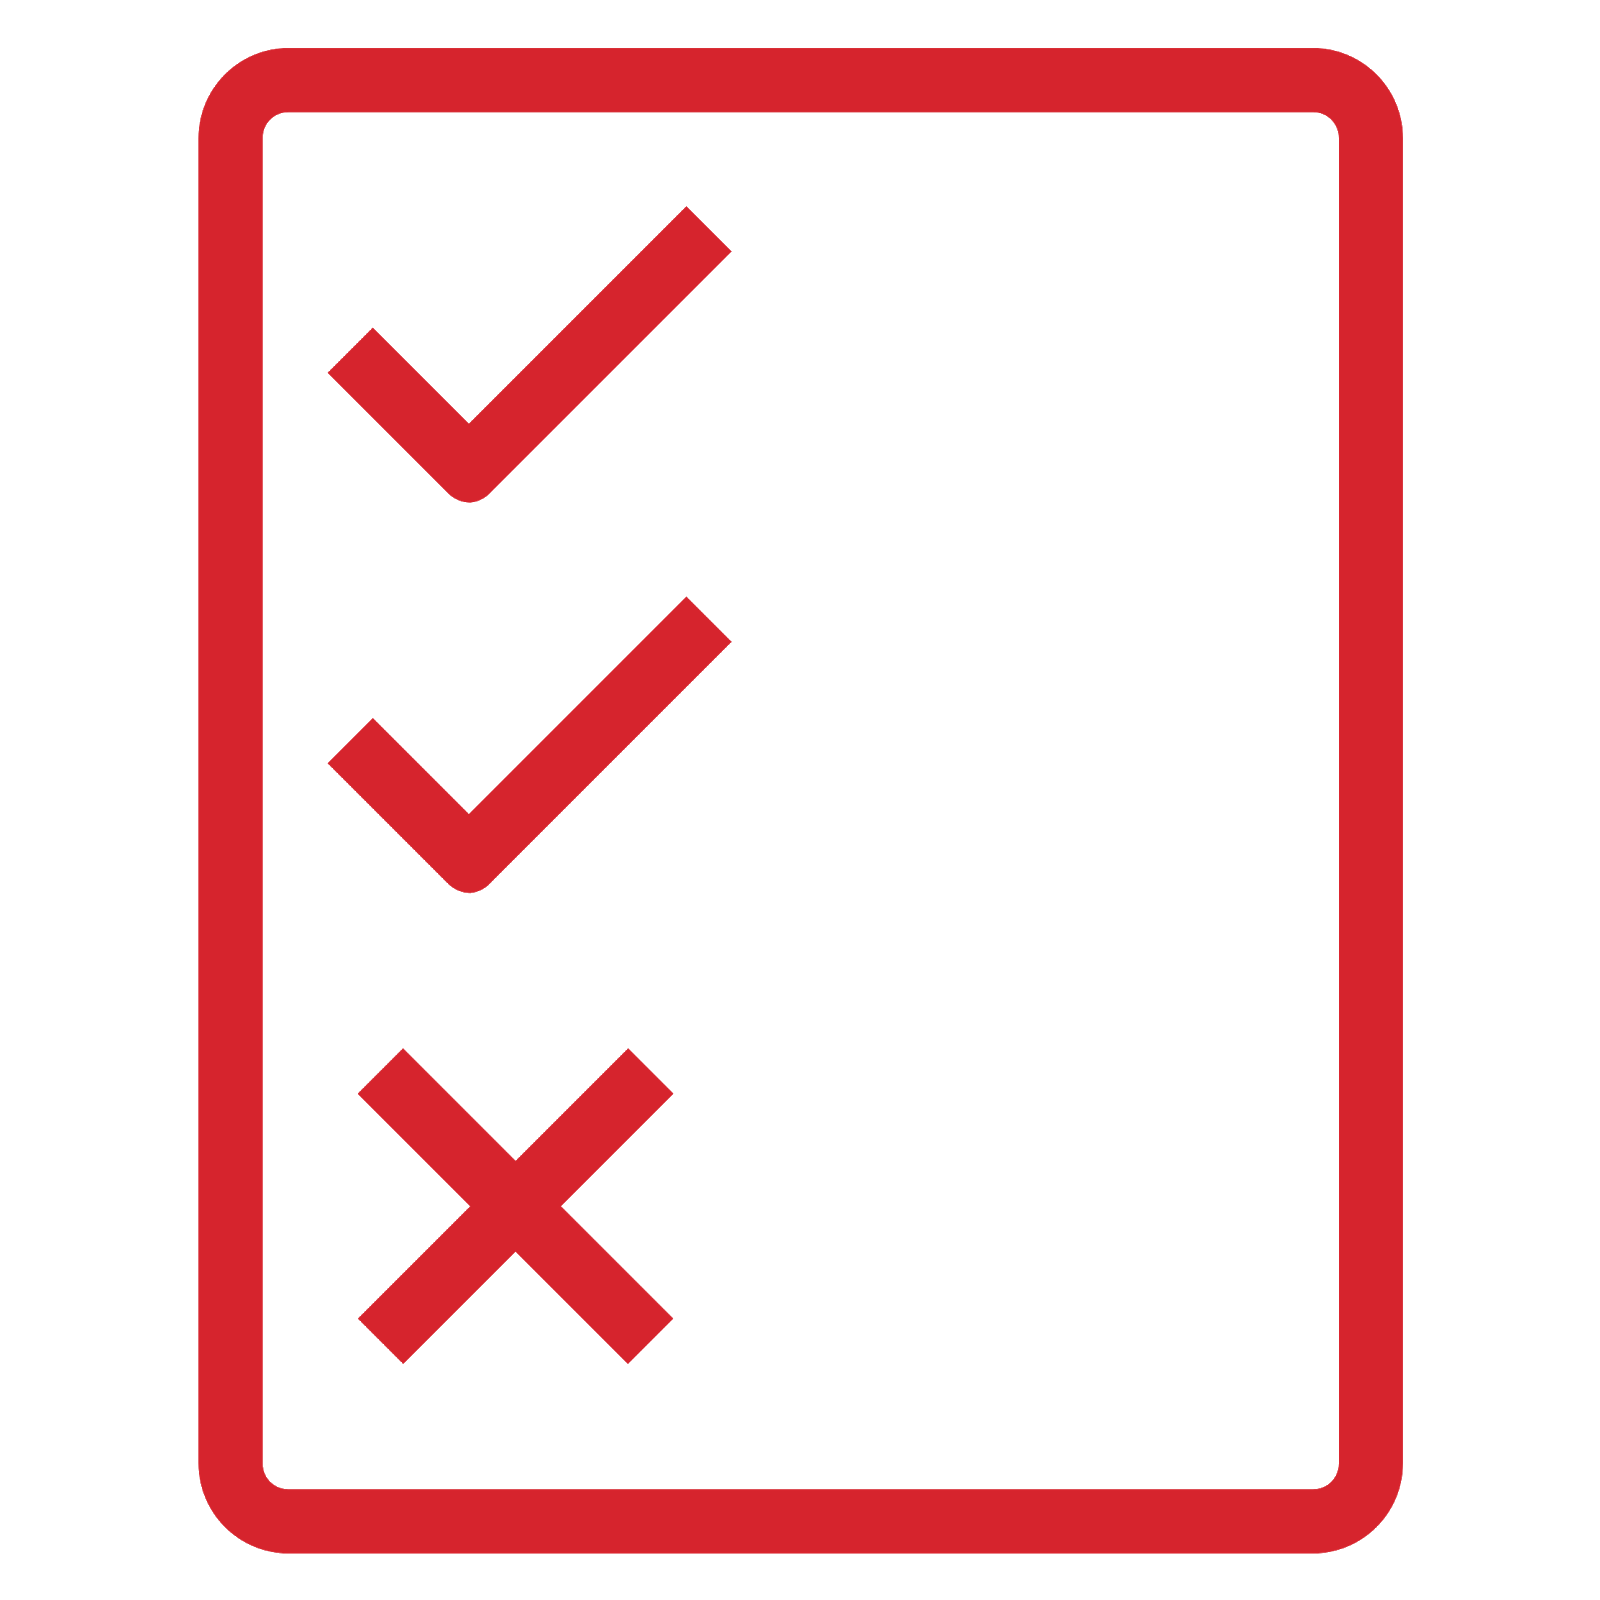 Policy icon depicting a rectangular sheet of paper, with a vertical column that includes two check marks and one X